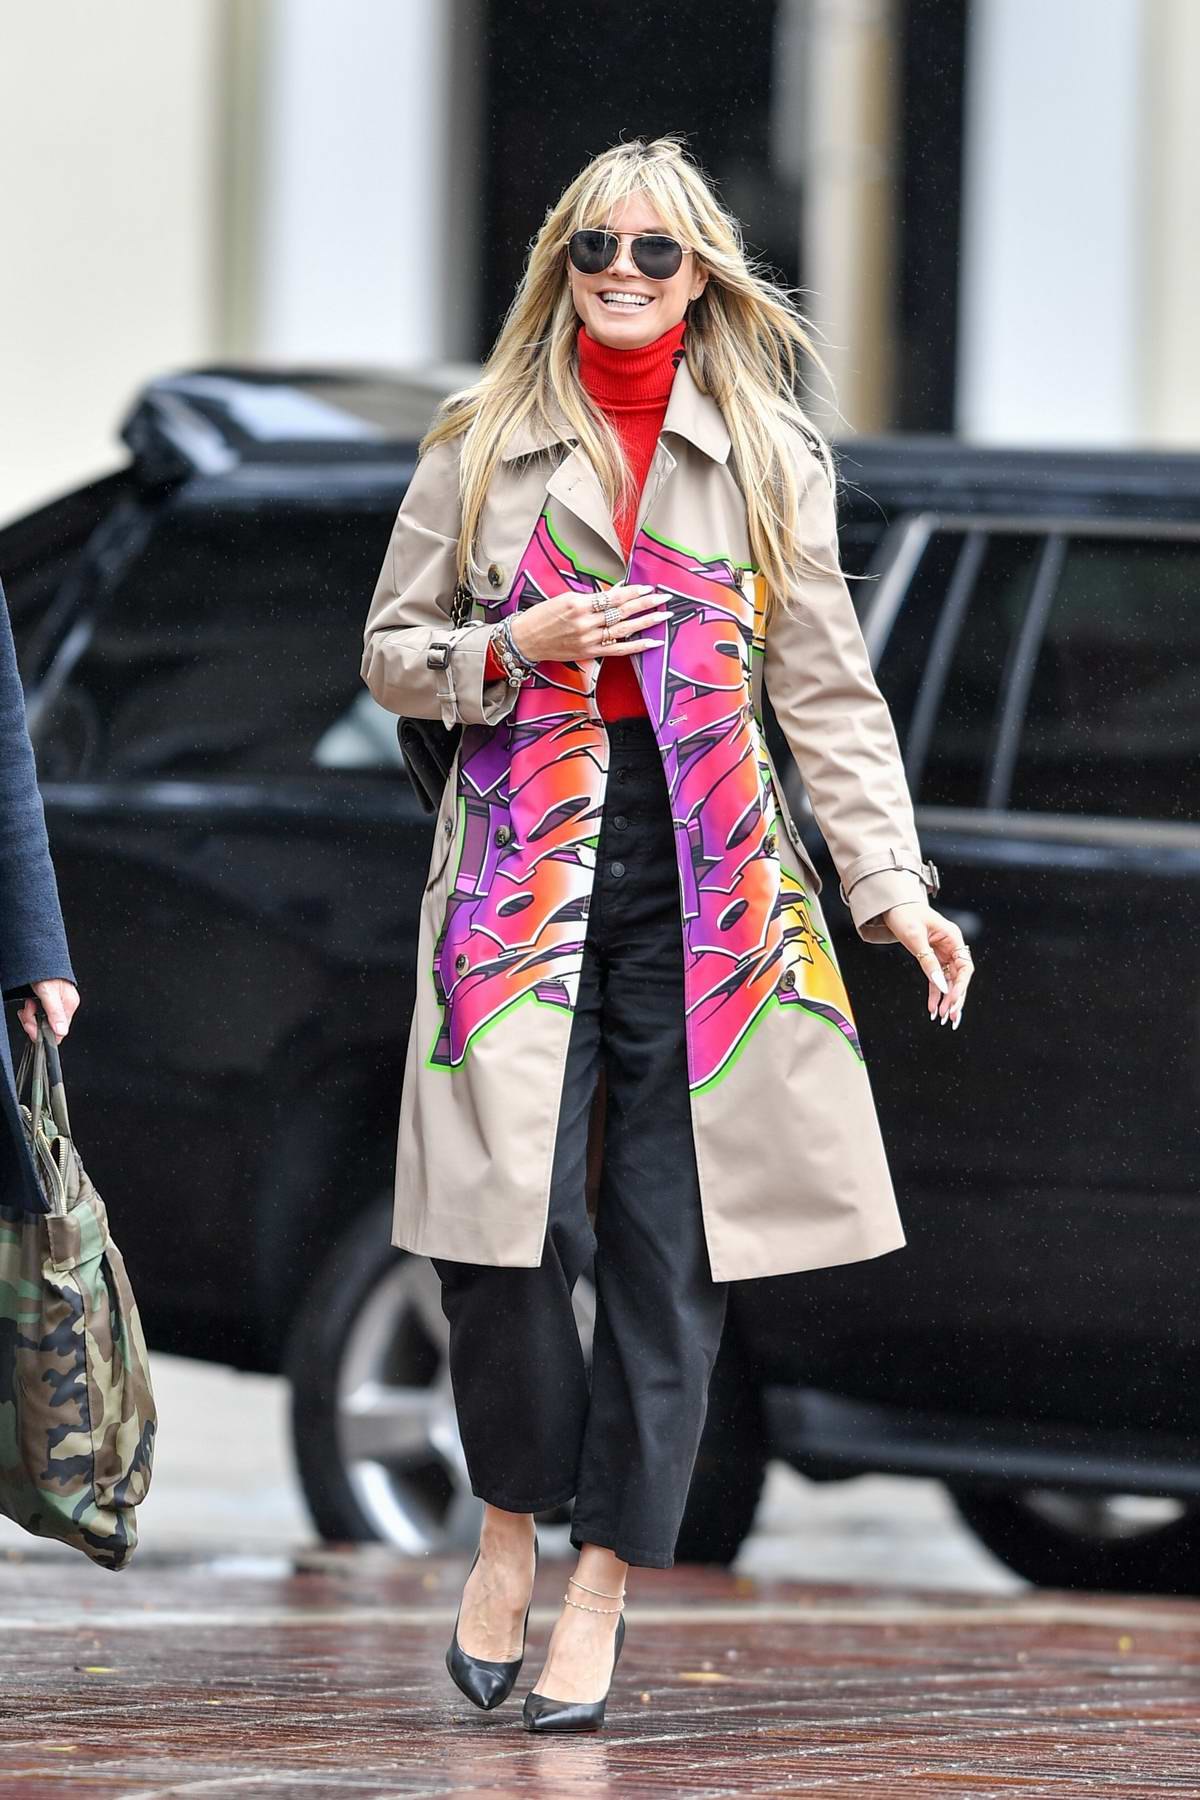 Heidi Klum dons a cool graffiti coat as she arrives at America's Got Talent in Pasadena, California